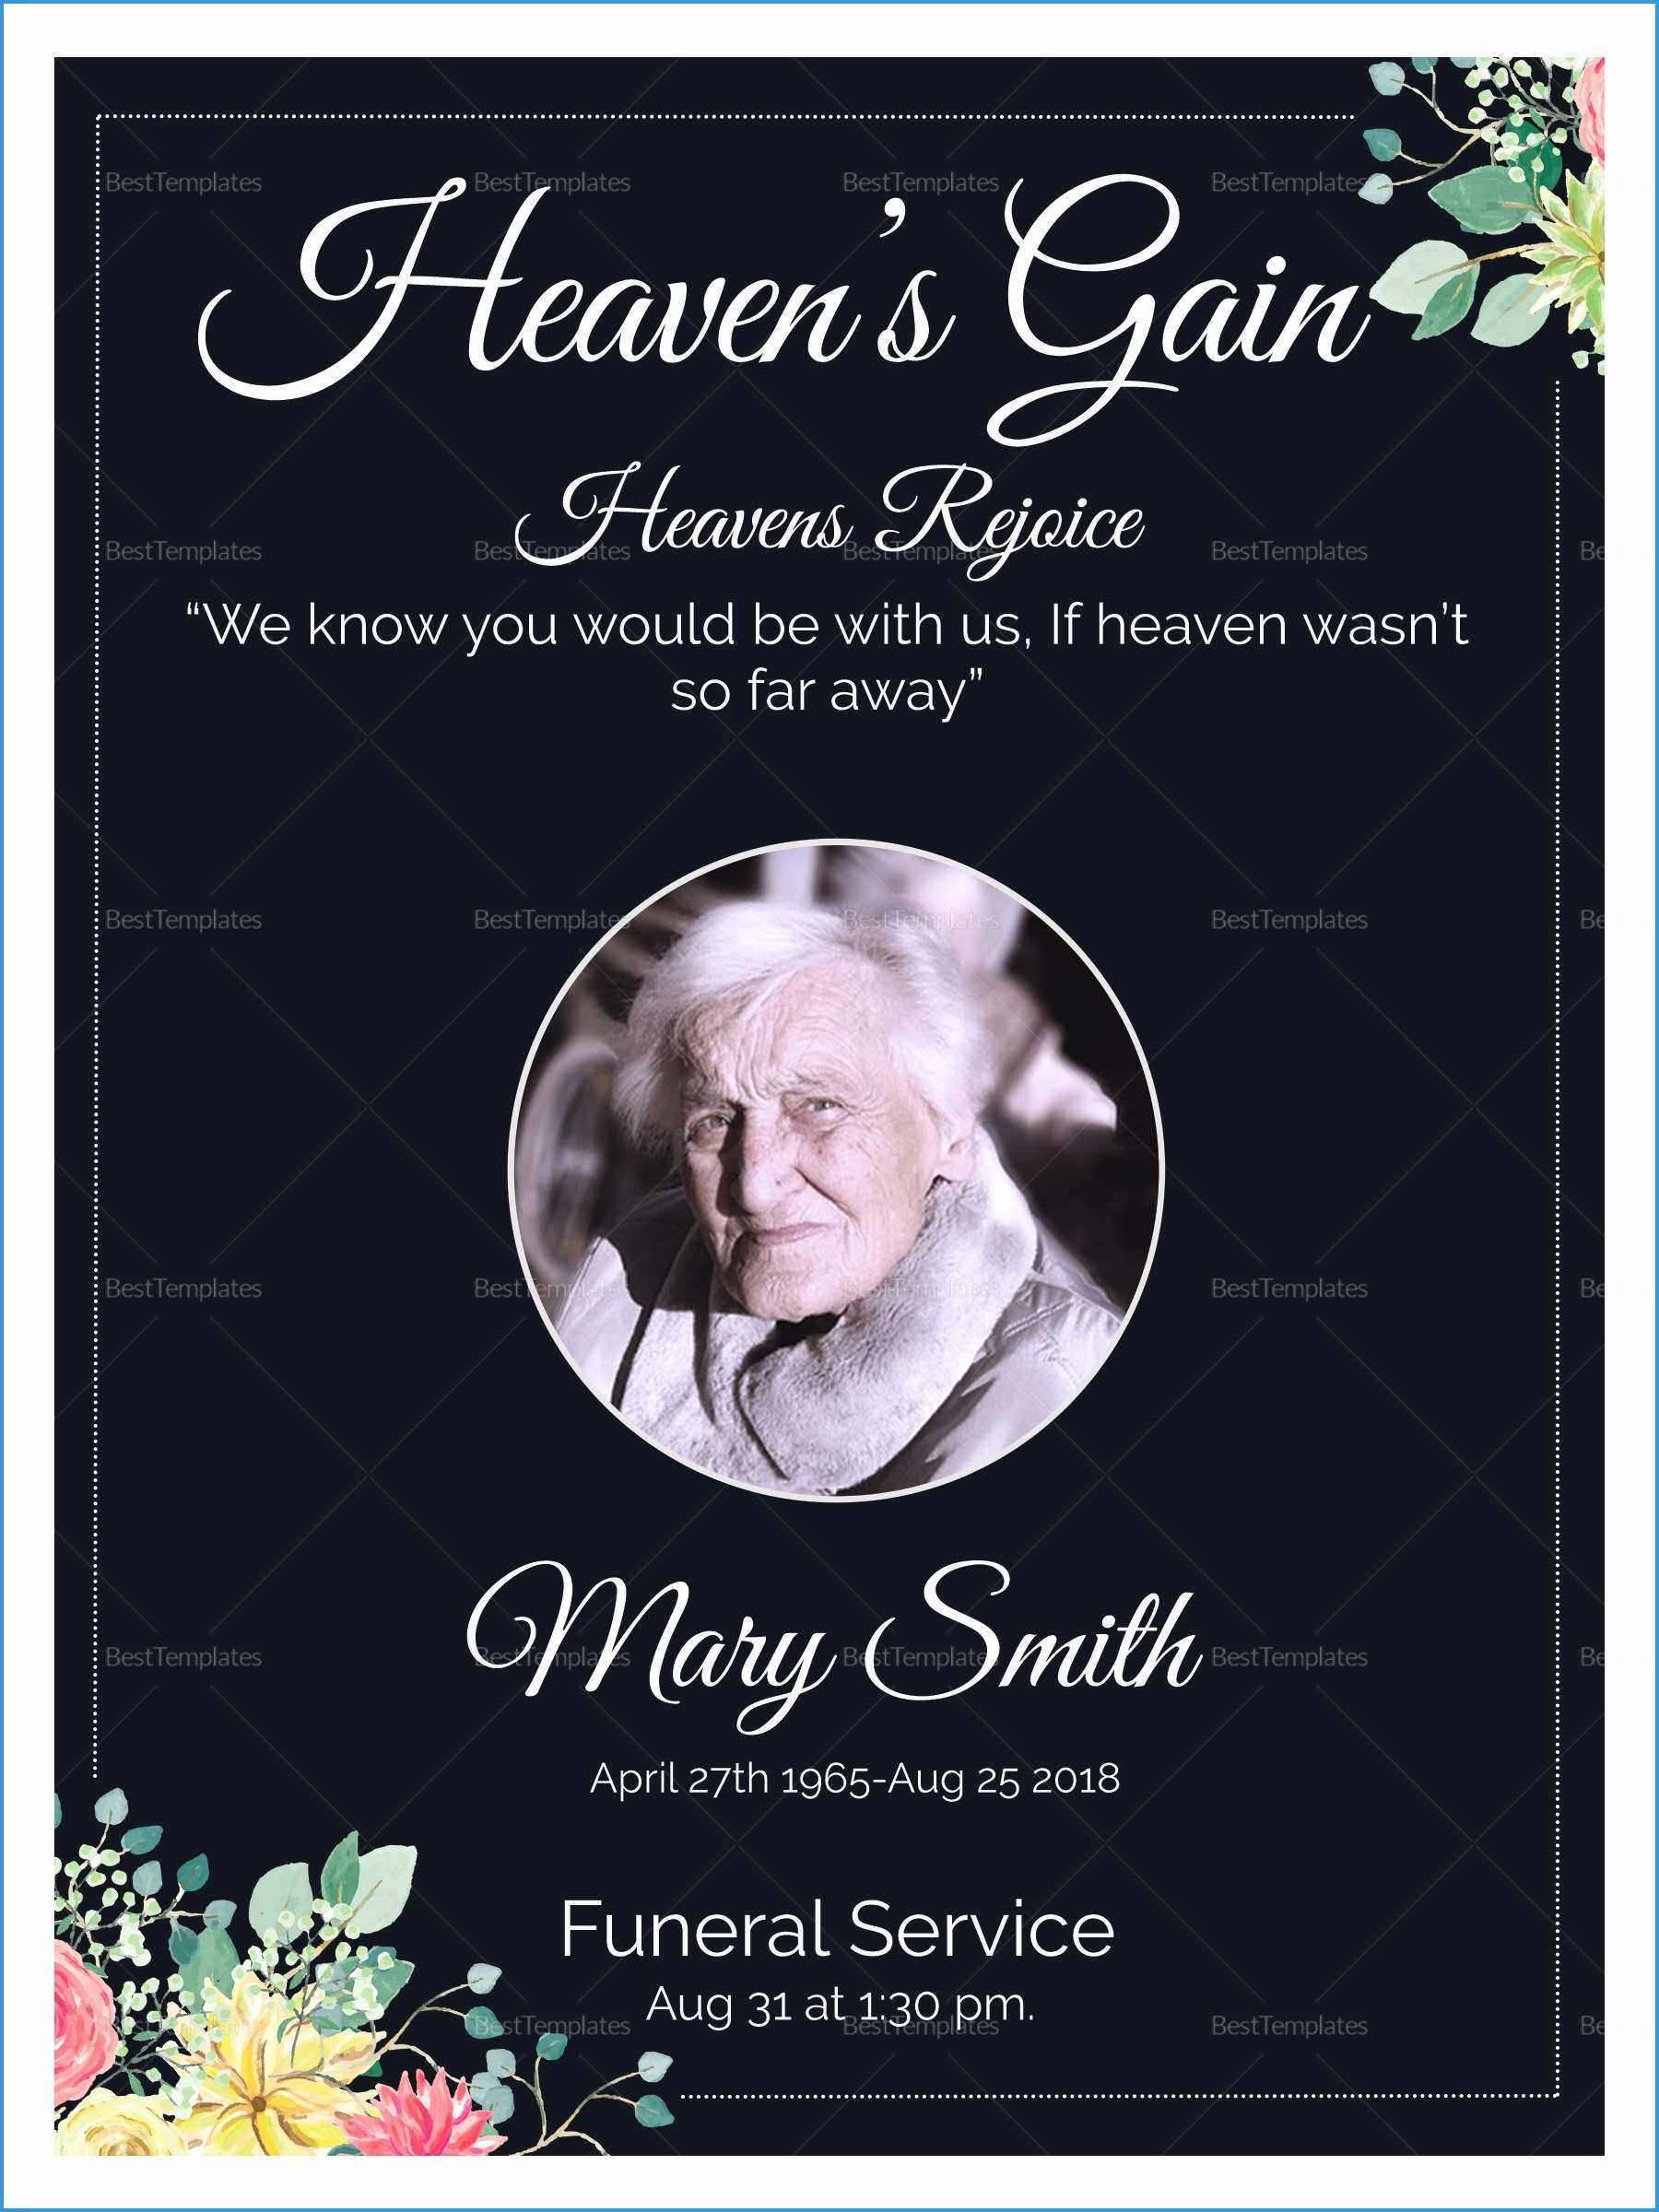 027 Free Memorial Card Template Ideas Death Announcement Within Funeral Invitation Card Template